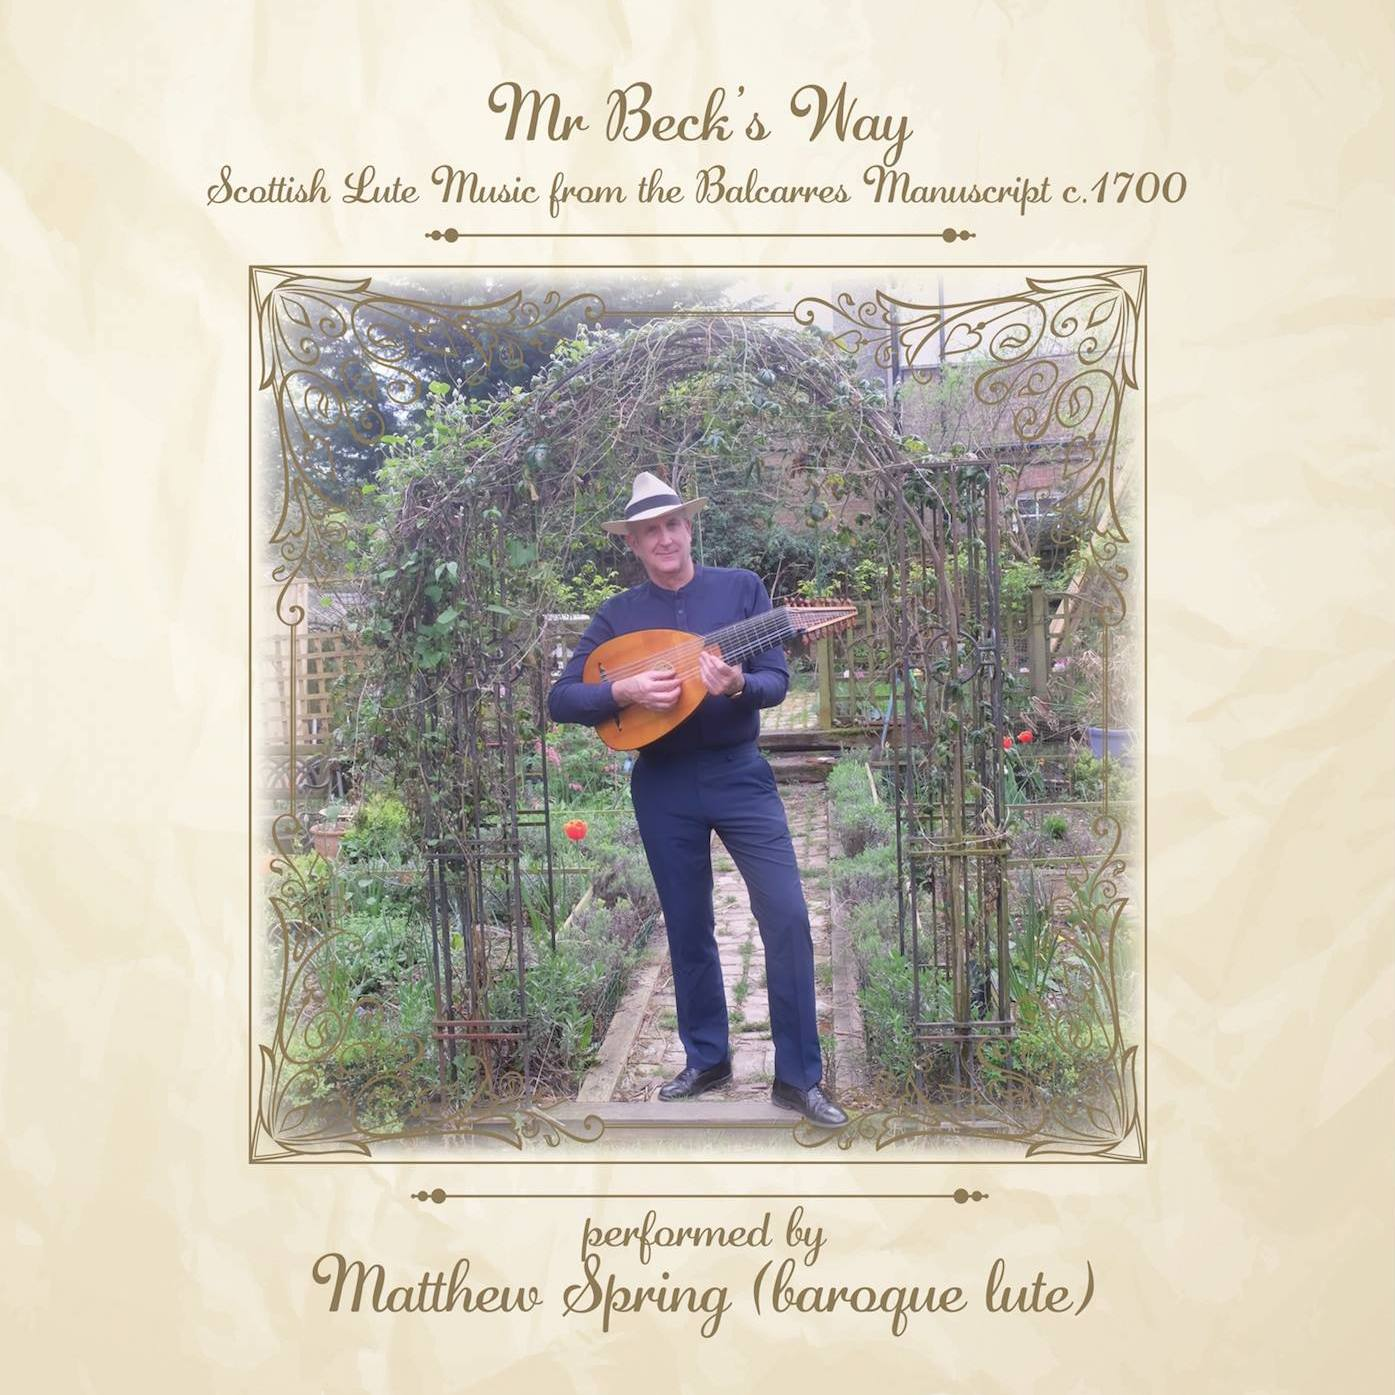 Artist:   Matthew Spring    Title:  Mr Beck's Way; Scottish Lute Music from the Balcarres Manuscript c.1700   Credit:  Recording, Mixing, Mastering   Year:  2018